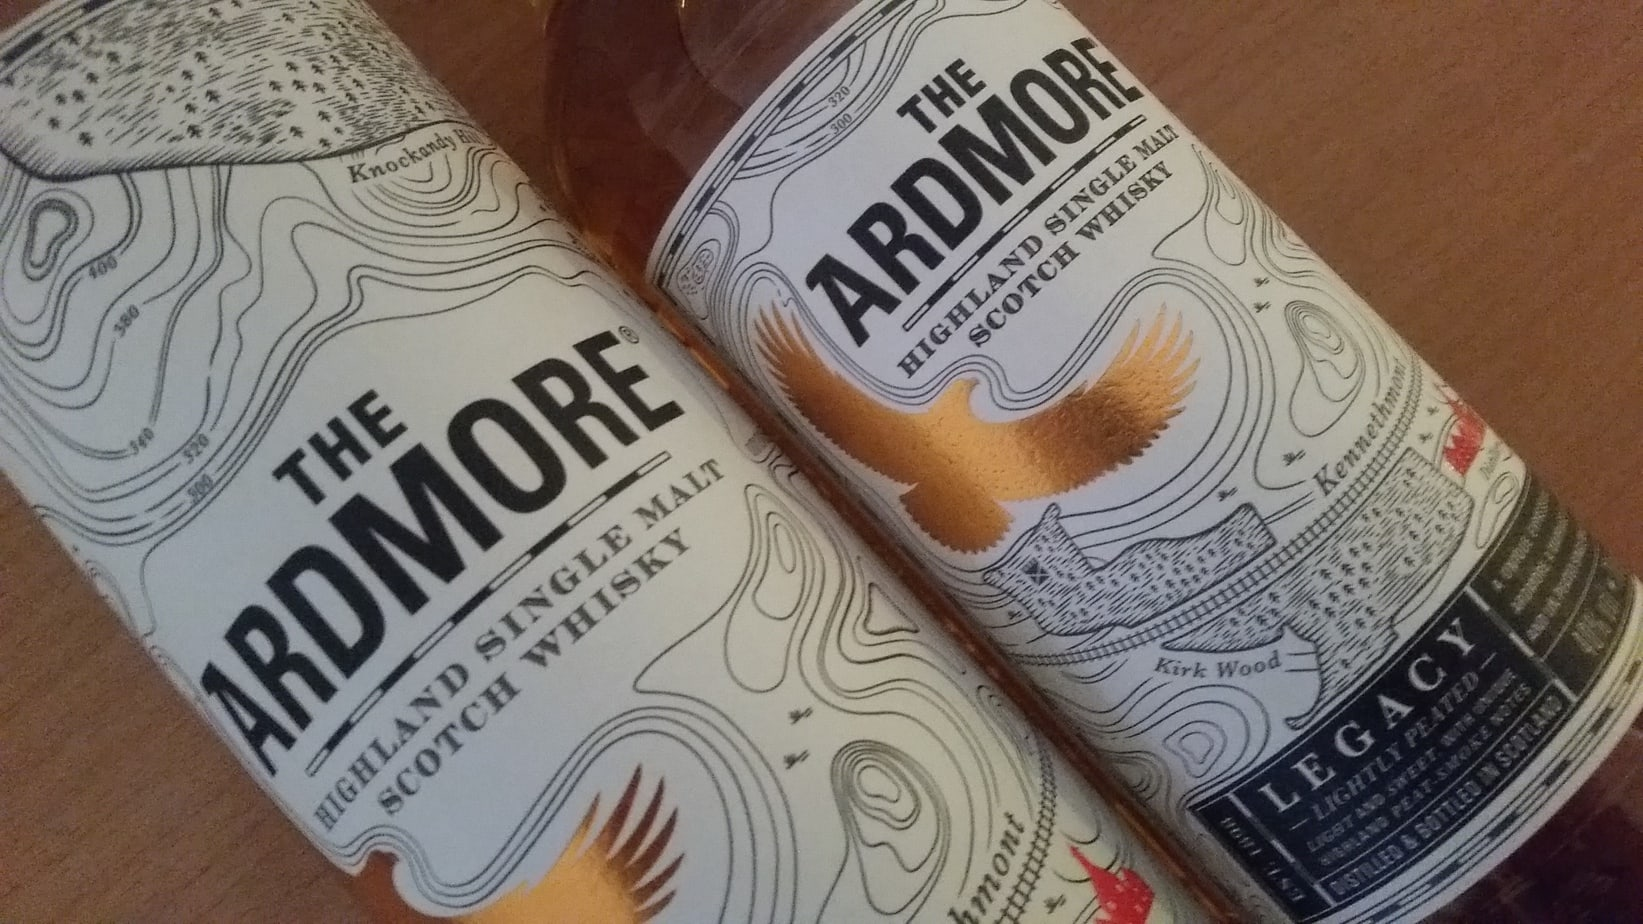 A bottle and tube of The Ardmore Legacy